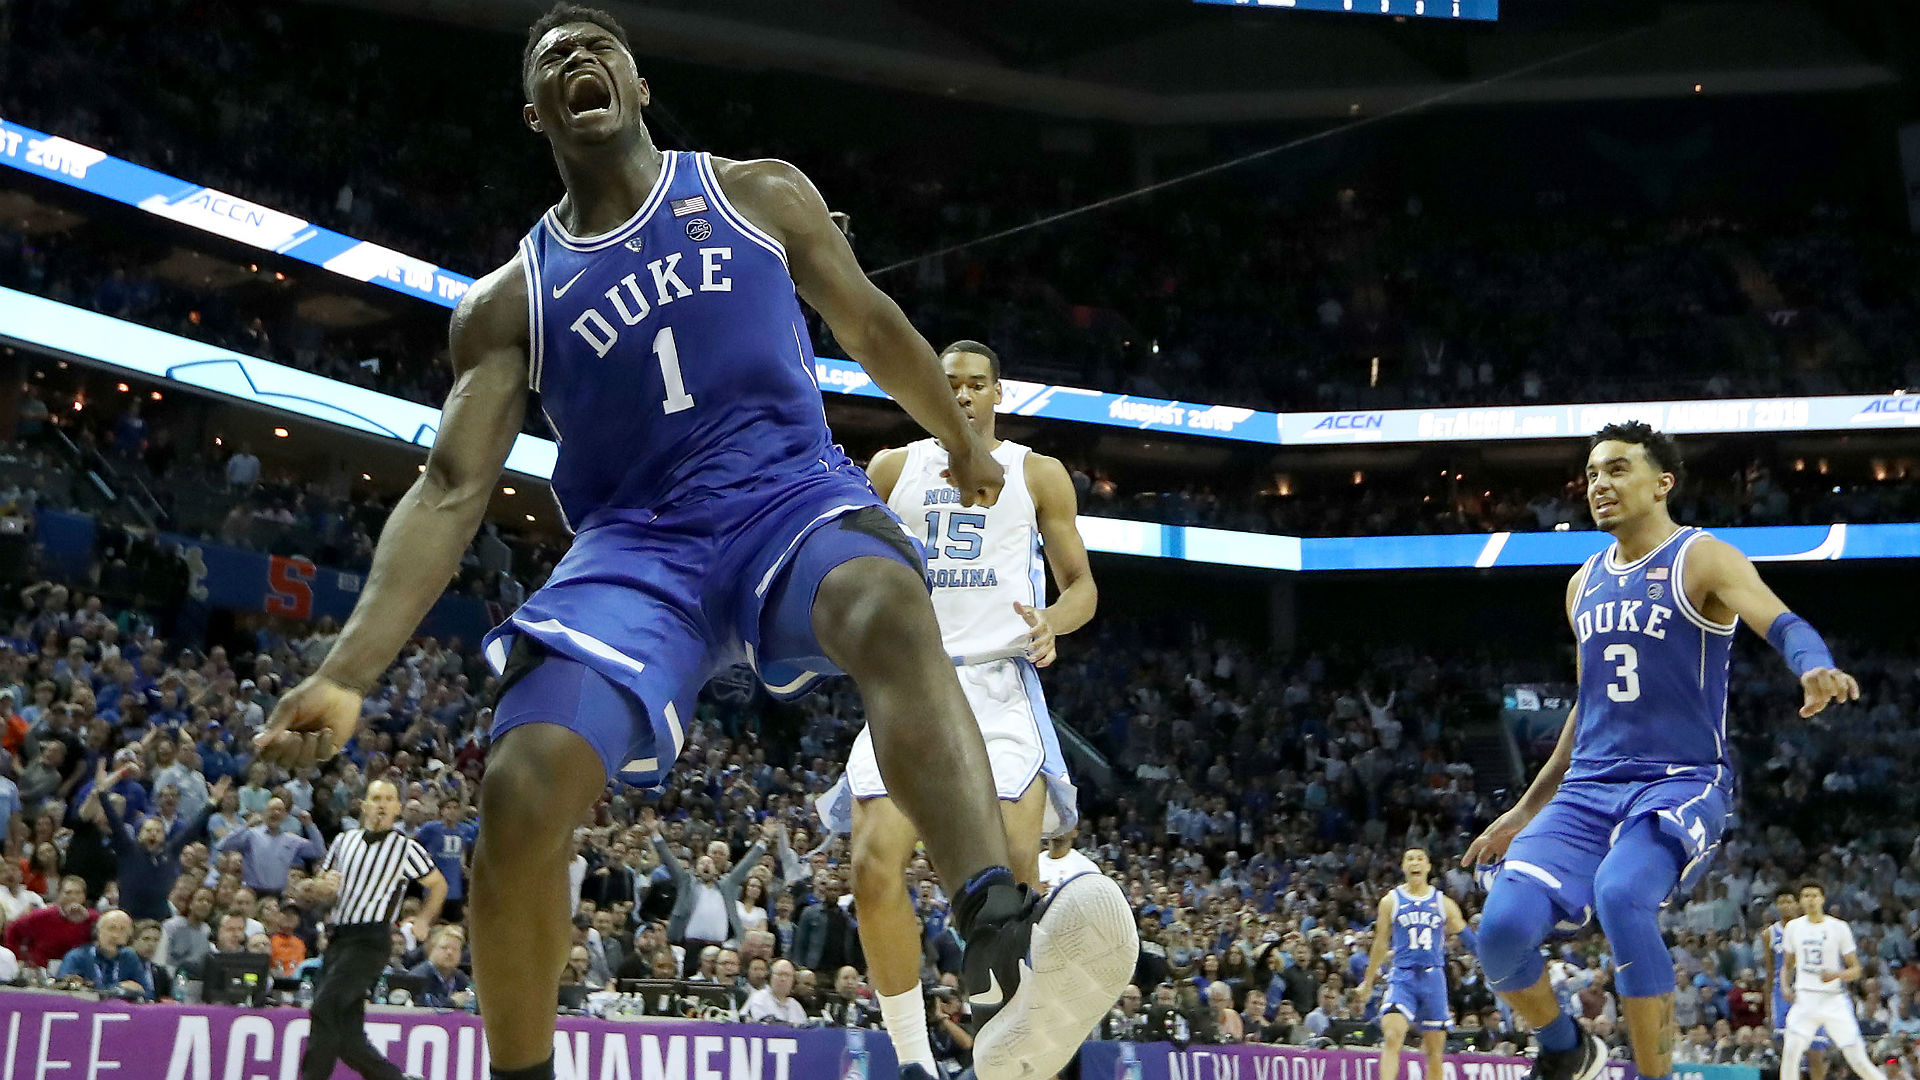 UNC Basketball: Tar Heels lose heartbreaker in ACC semifinal